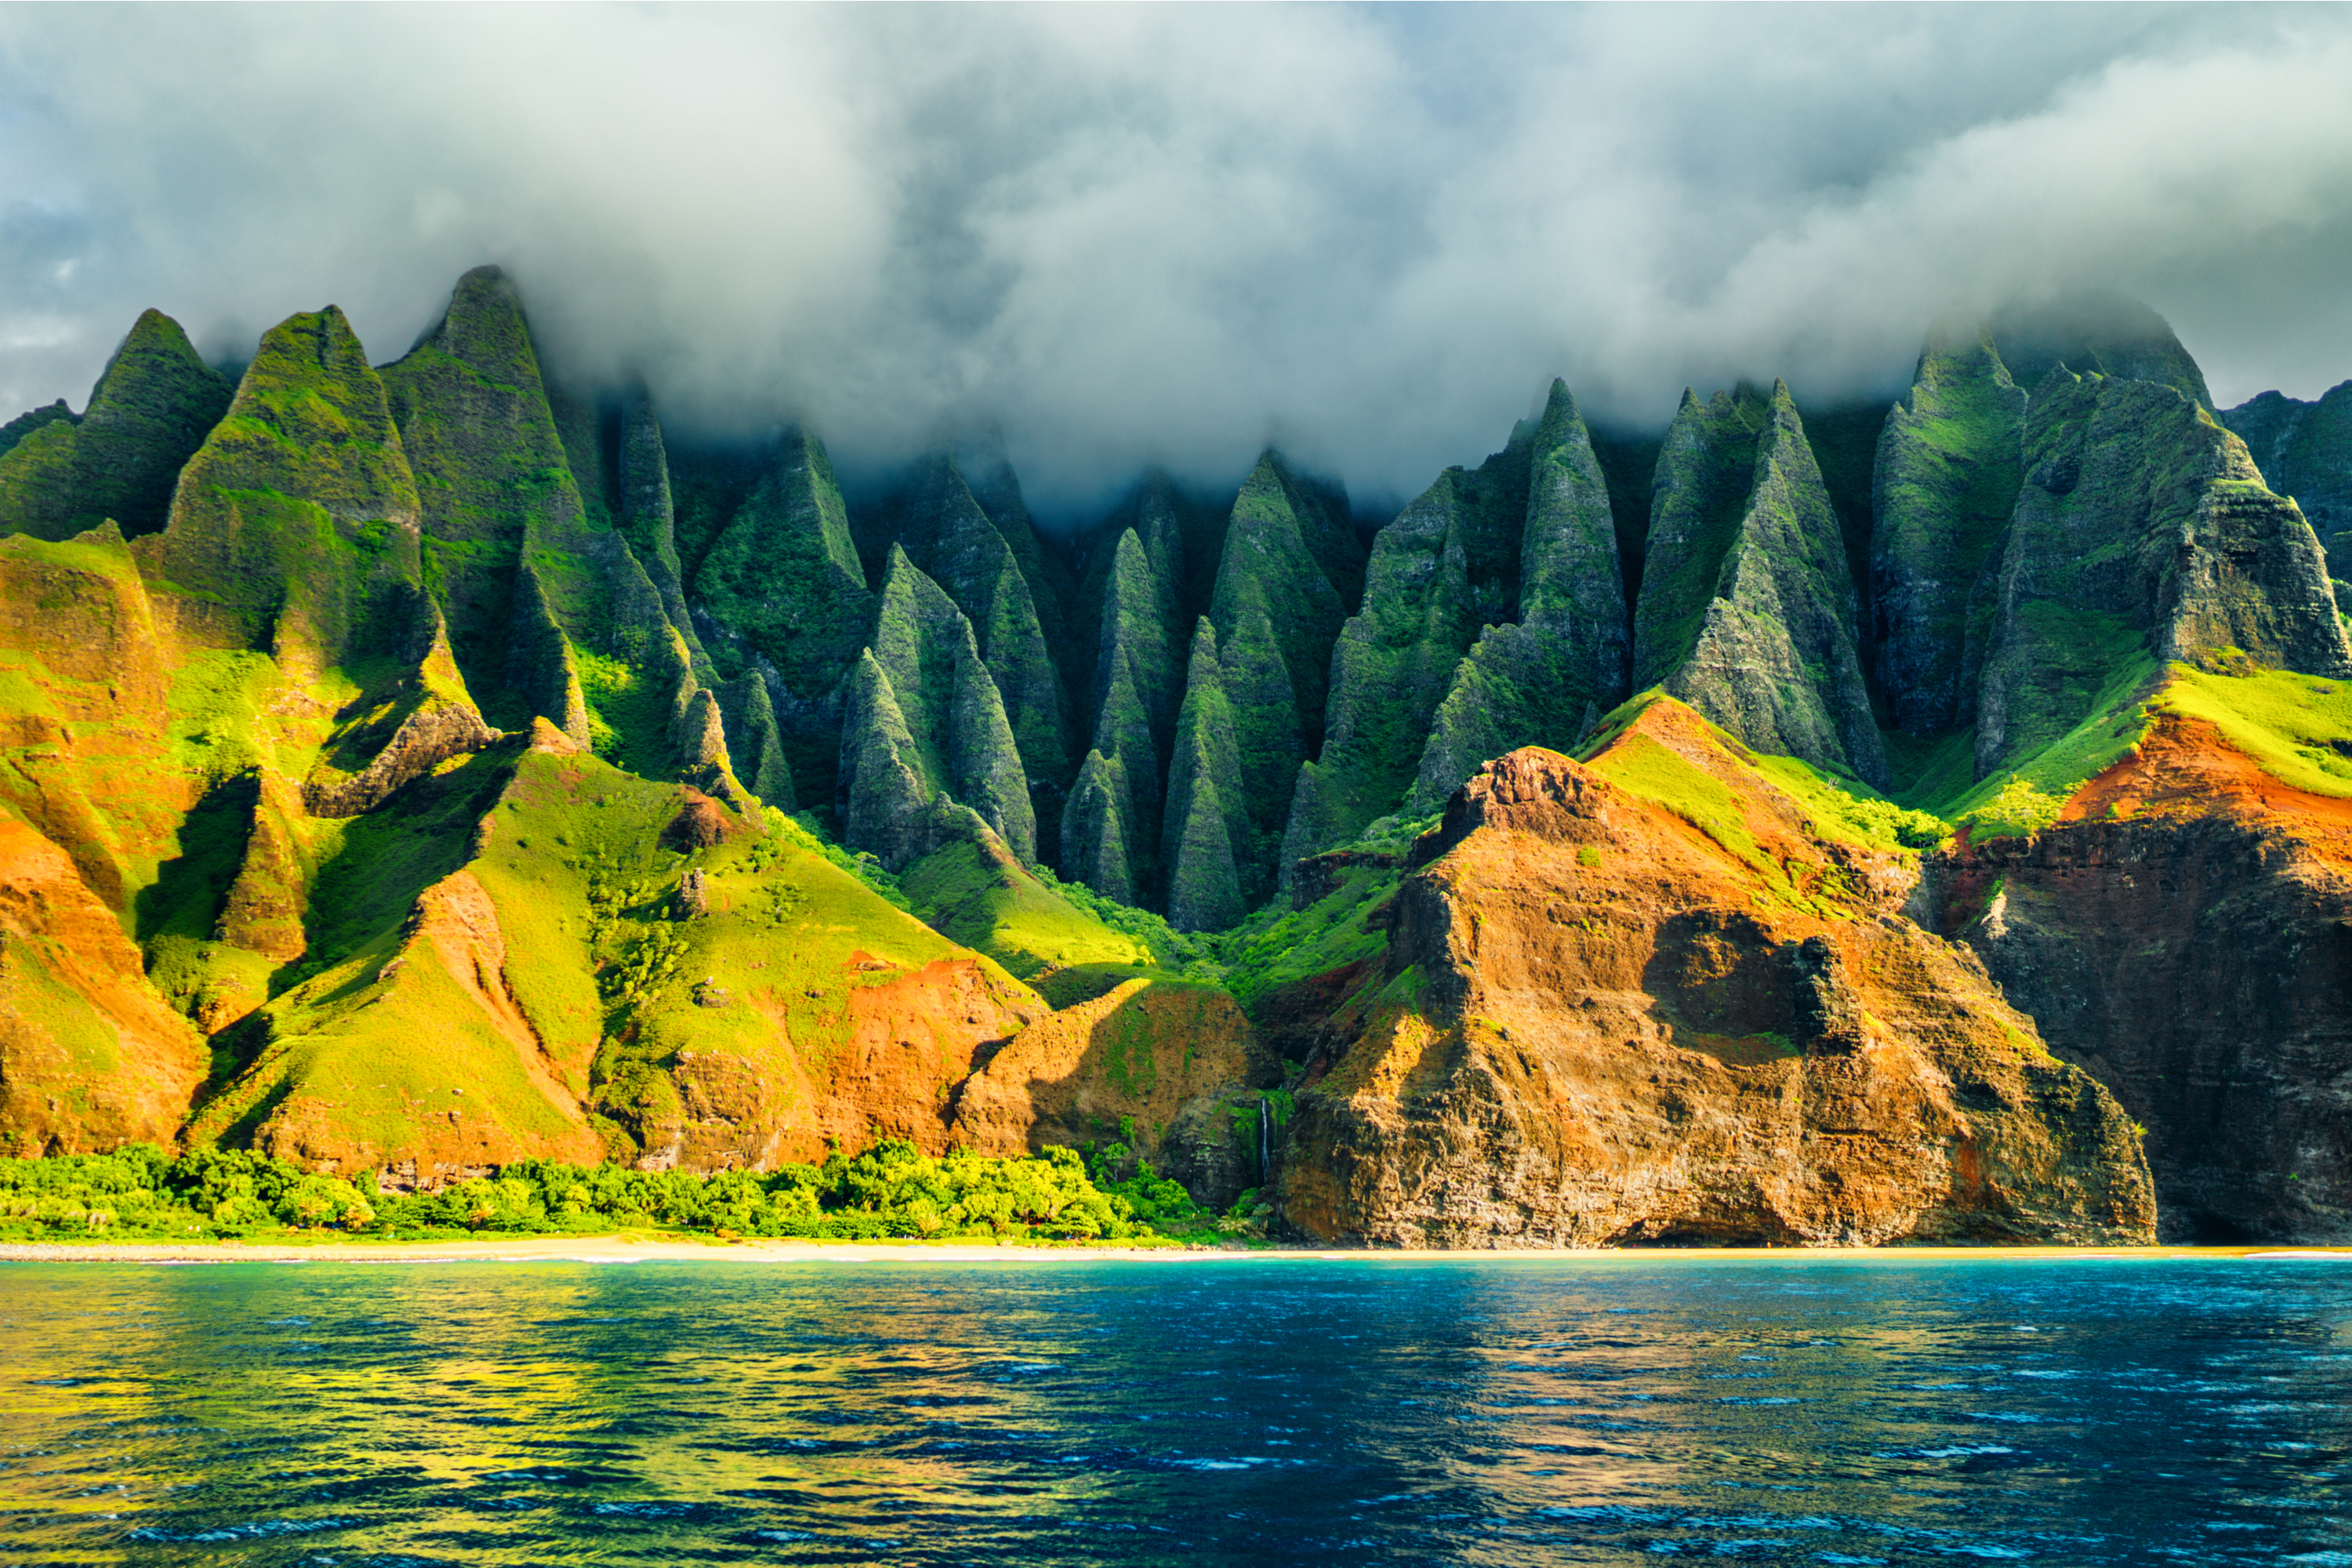 If you're heading to Kauai., then you need to know these secret things to do in Kauai. You will fall in love with this island!